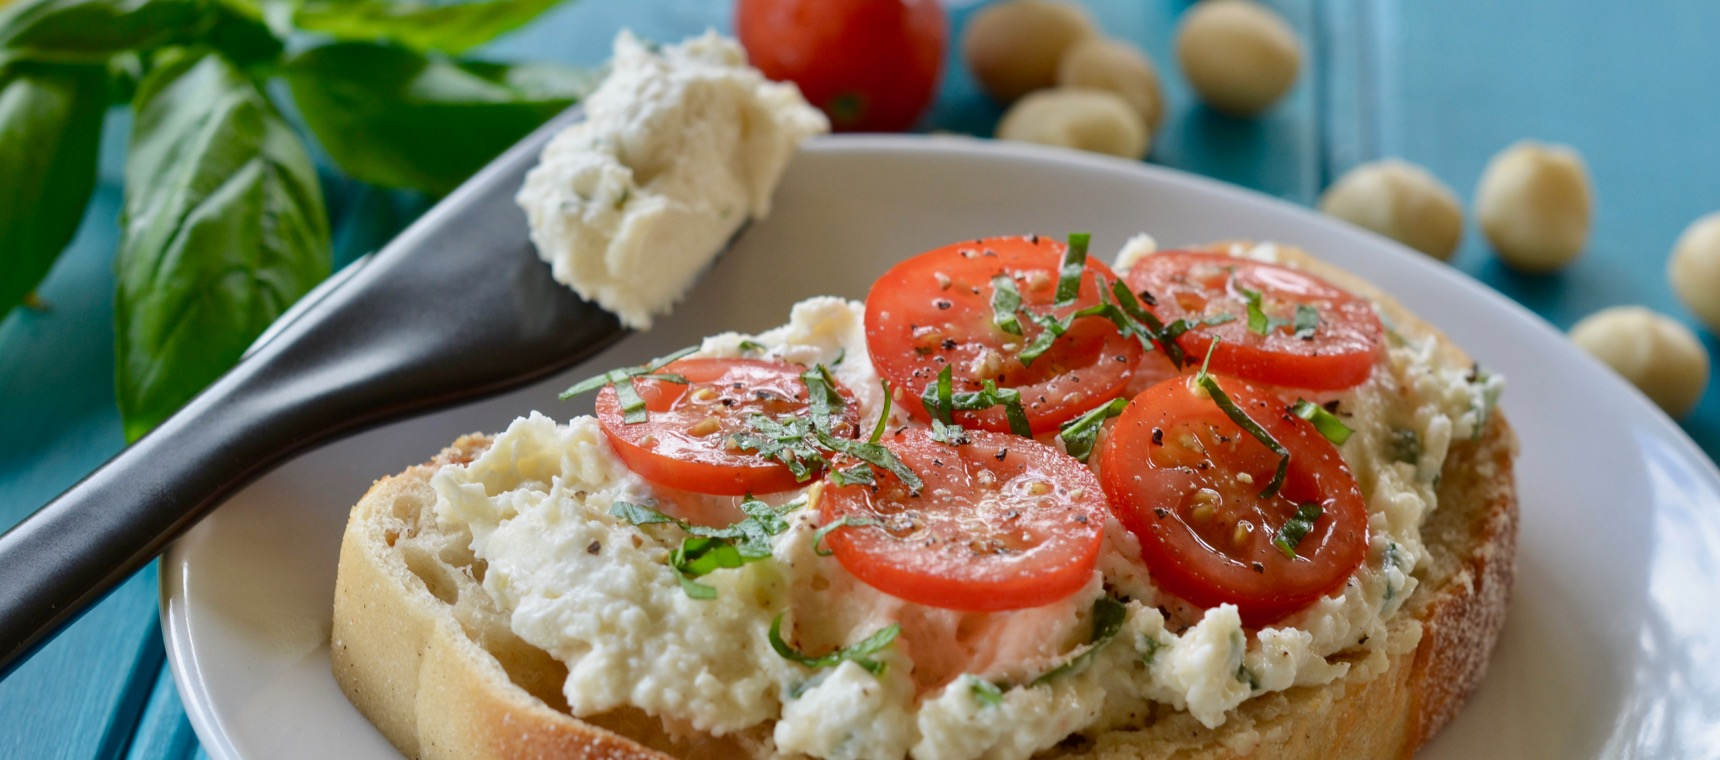 Macadamia Ricotta and Tomato Toast